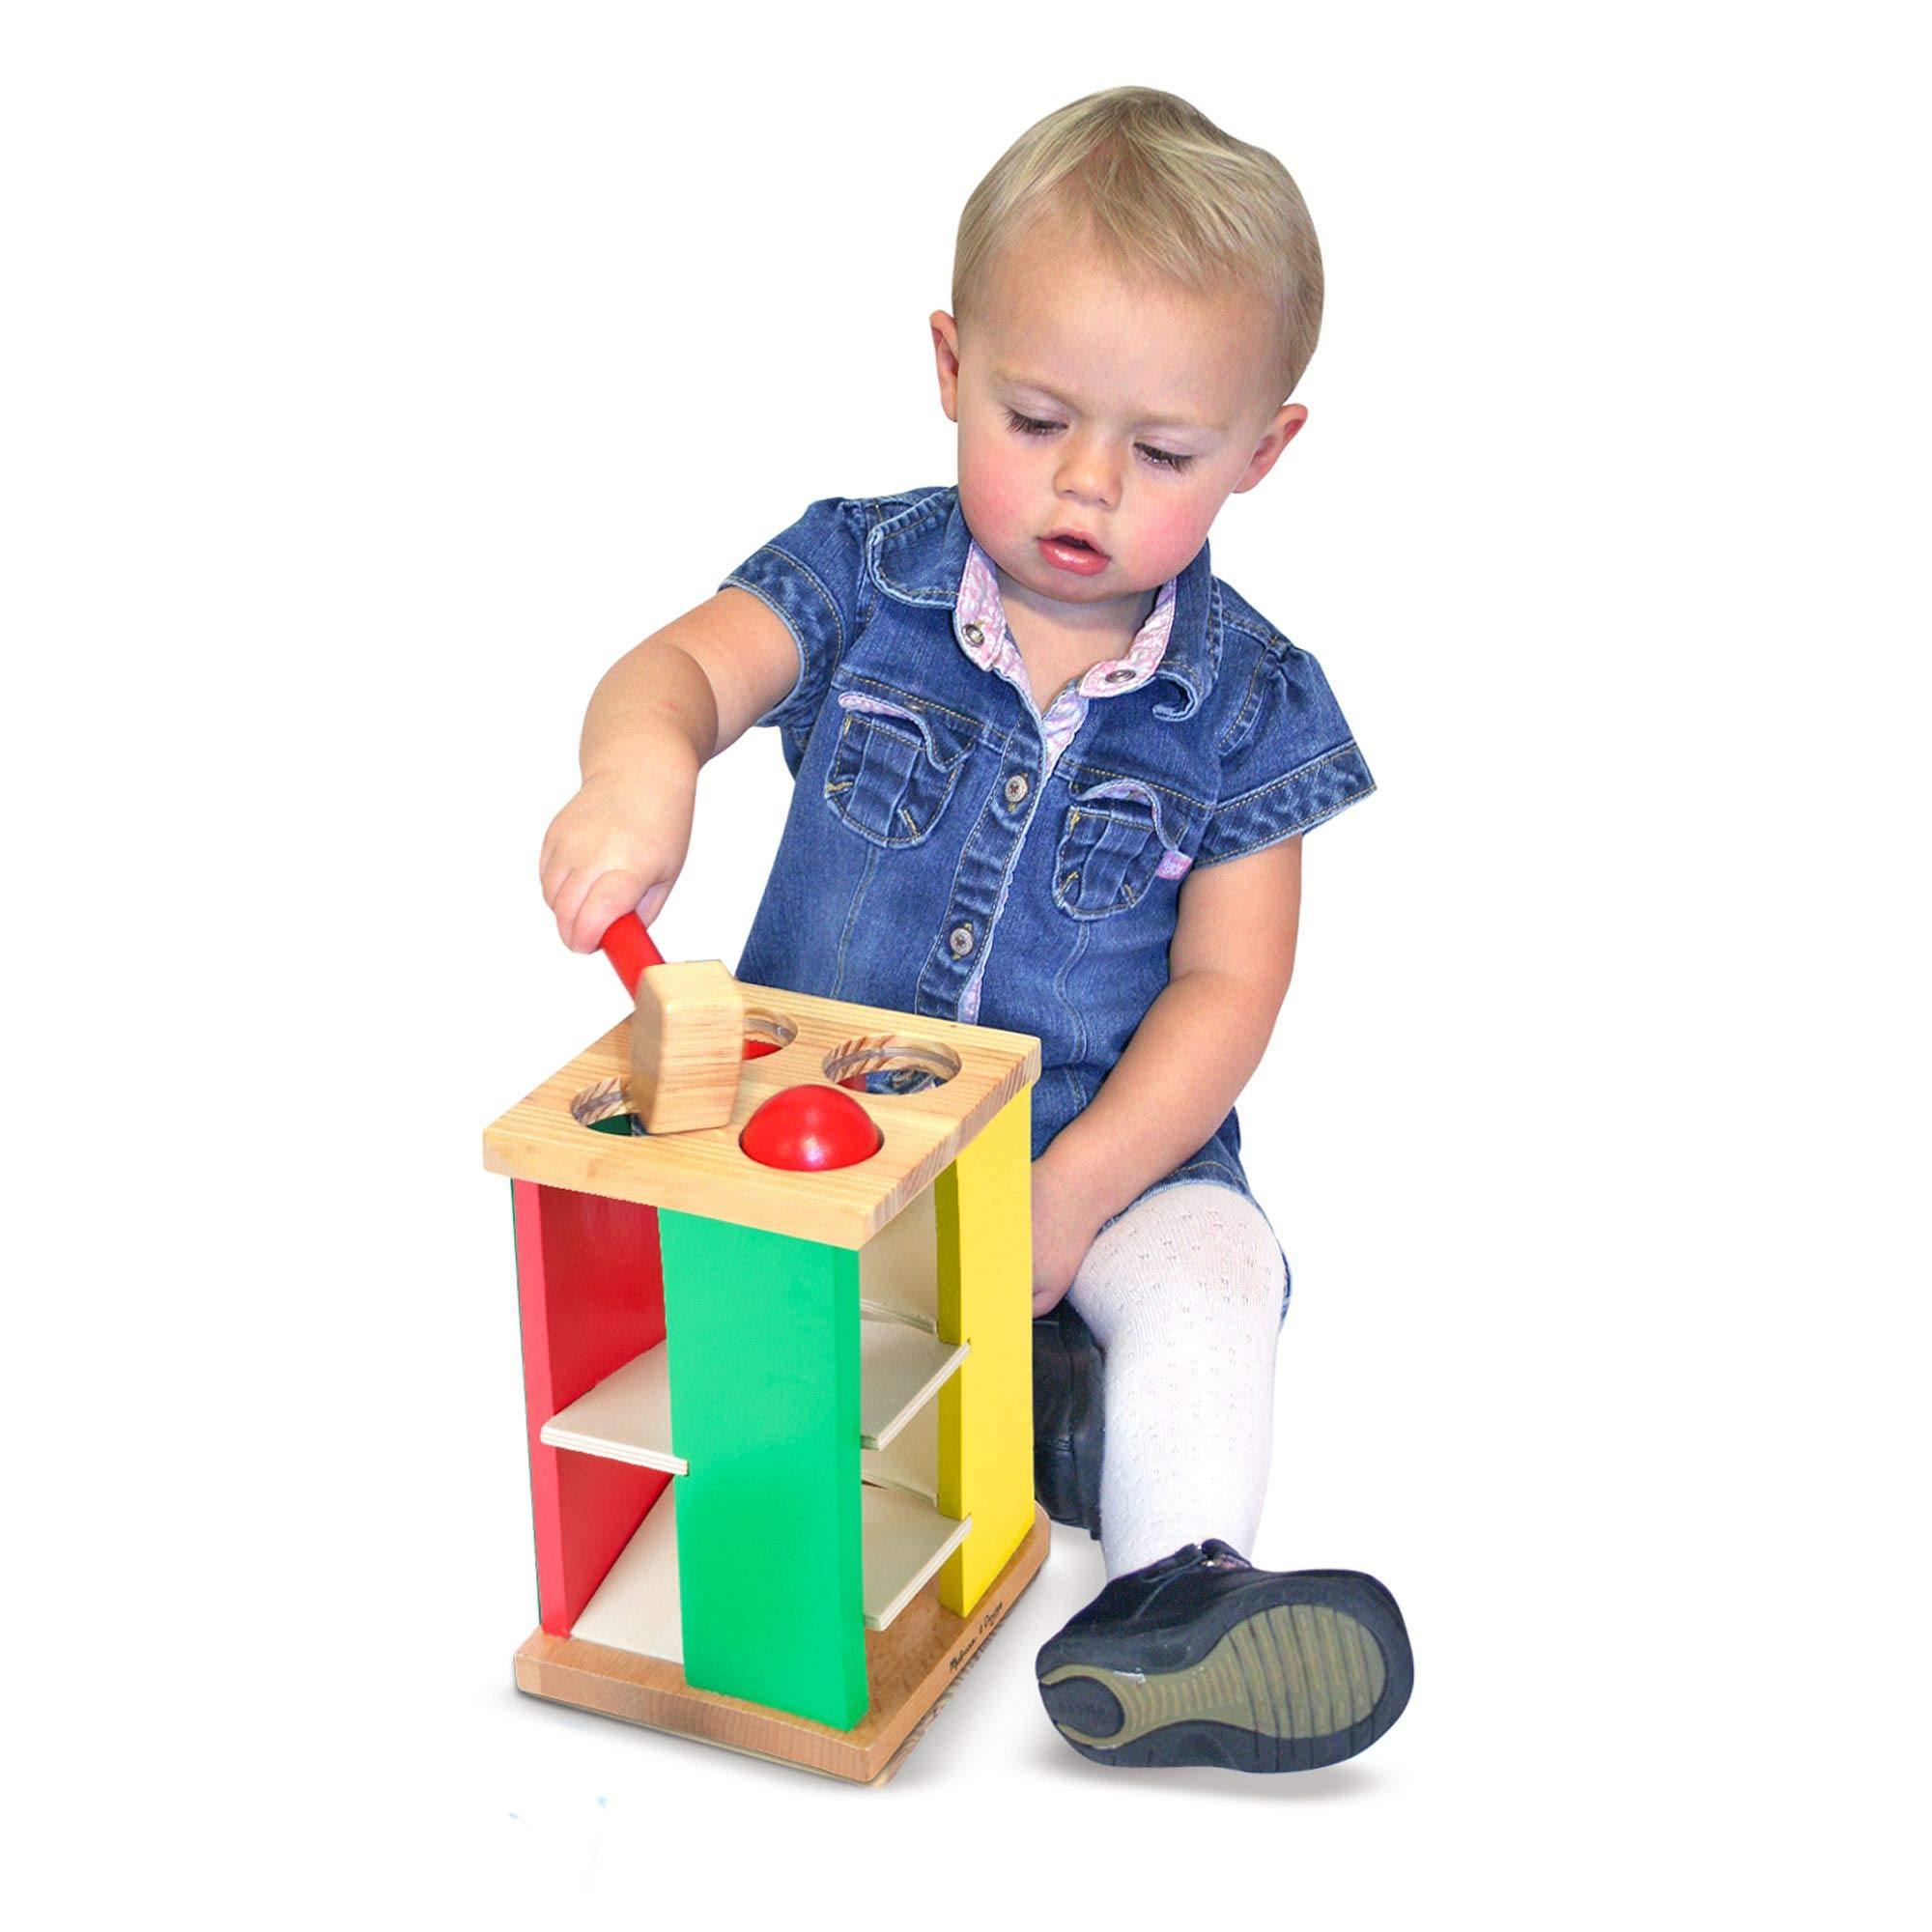 """Melissa & Doug Pound & Roll Tower, Developmental Toy, Classic Pounding Toy, Bright-Colored Pieces, Durable Construction, 10"""" H x 5.65"""" W by Melissa & Doug (Image #3)"""